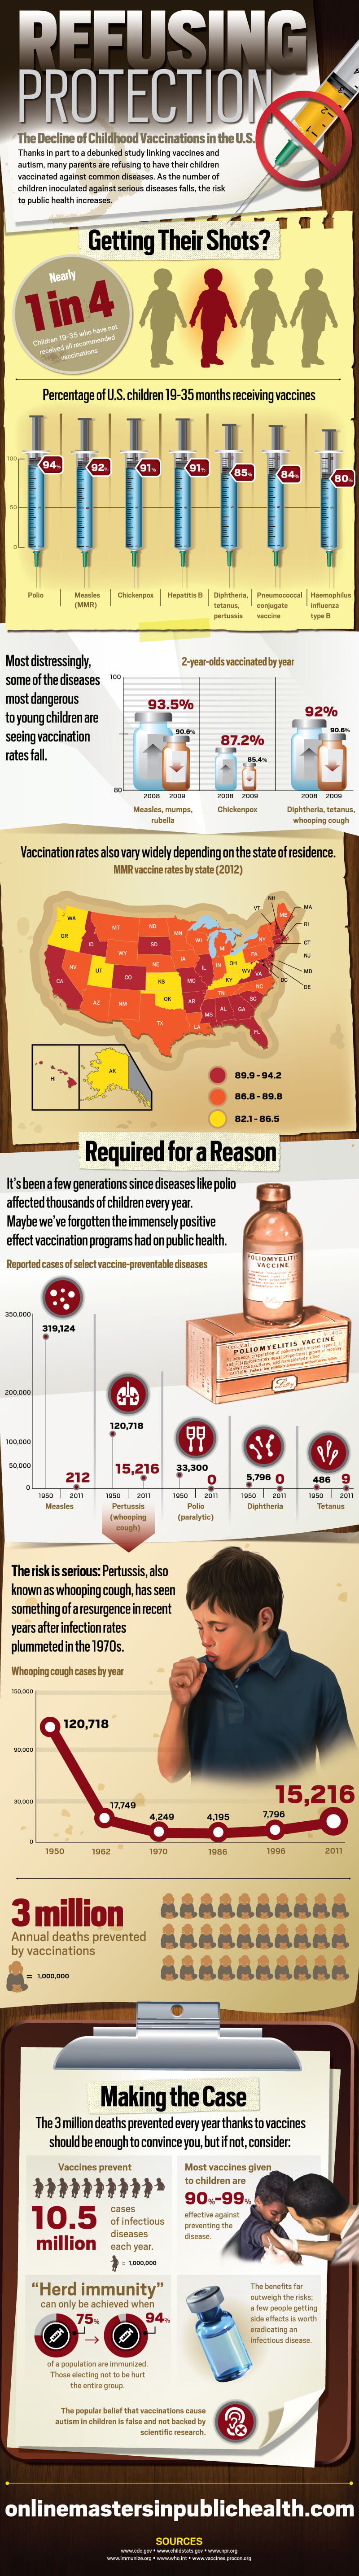 Decline-of-Childhood-Vaccination-infographic